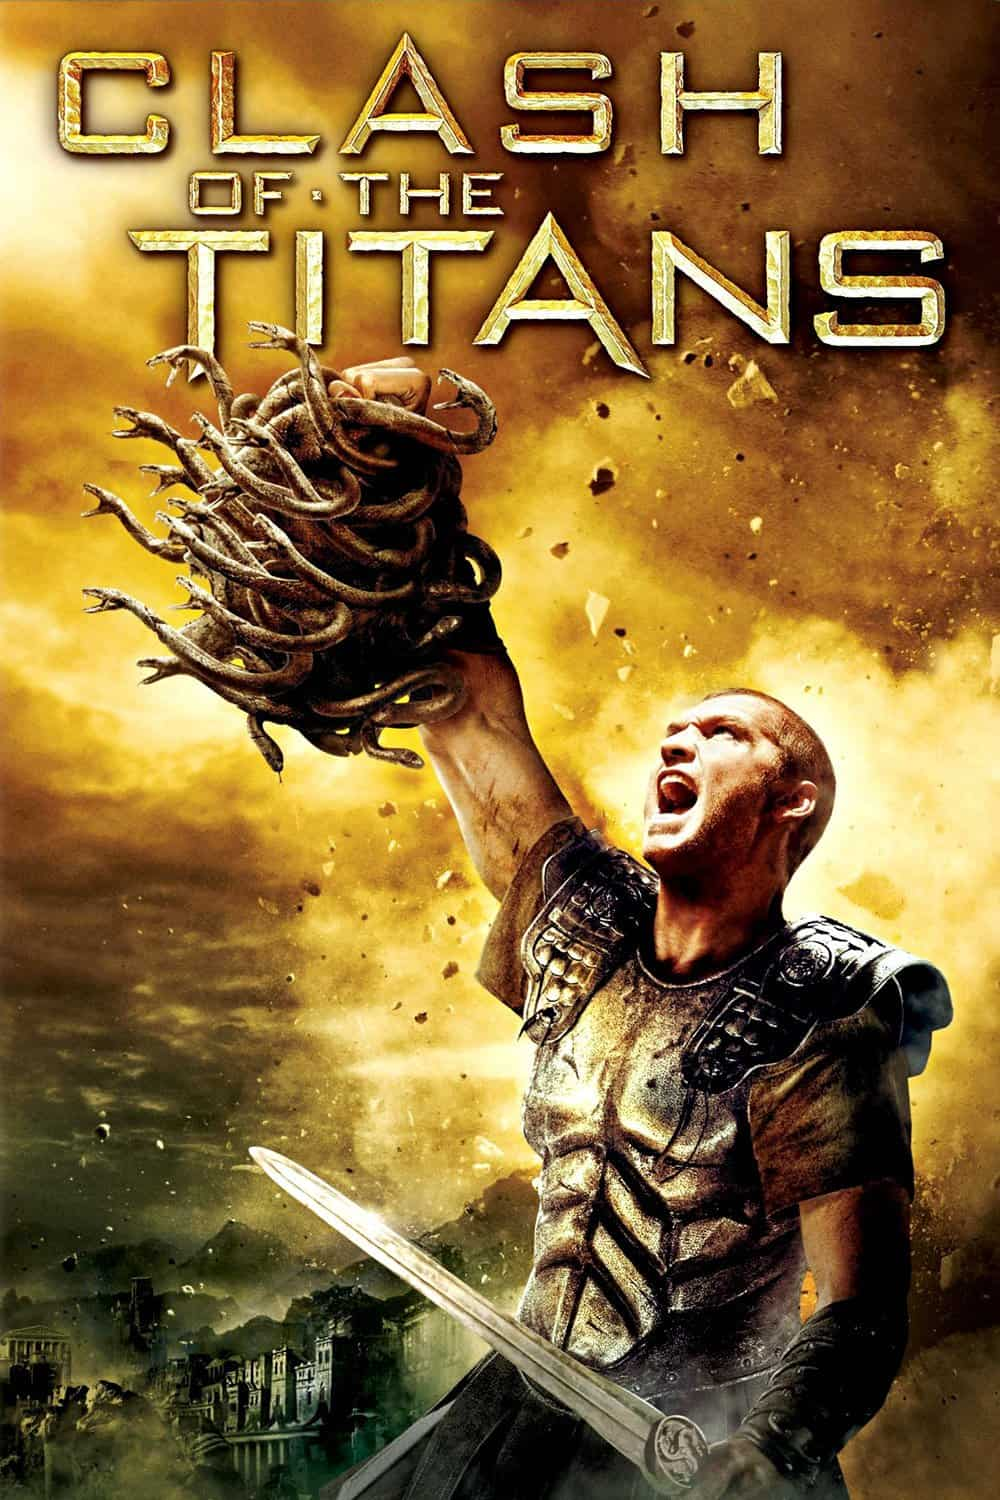 Clash of the Titans, 2010